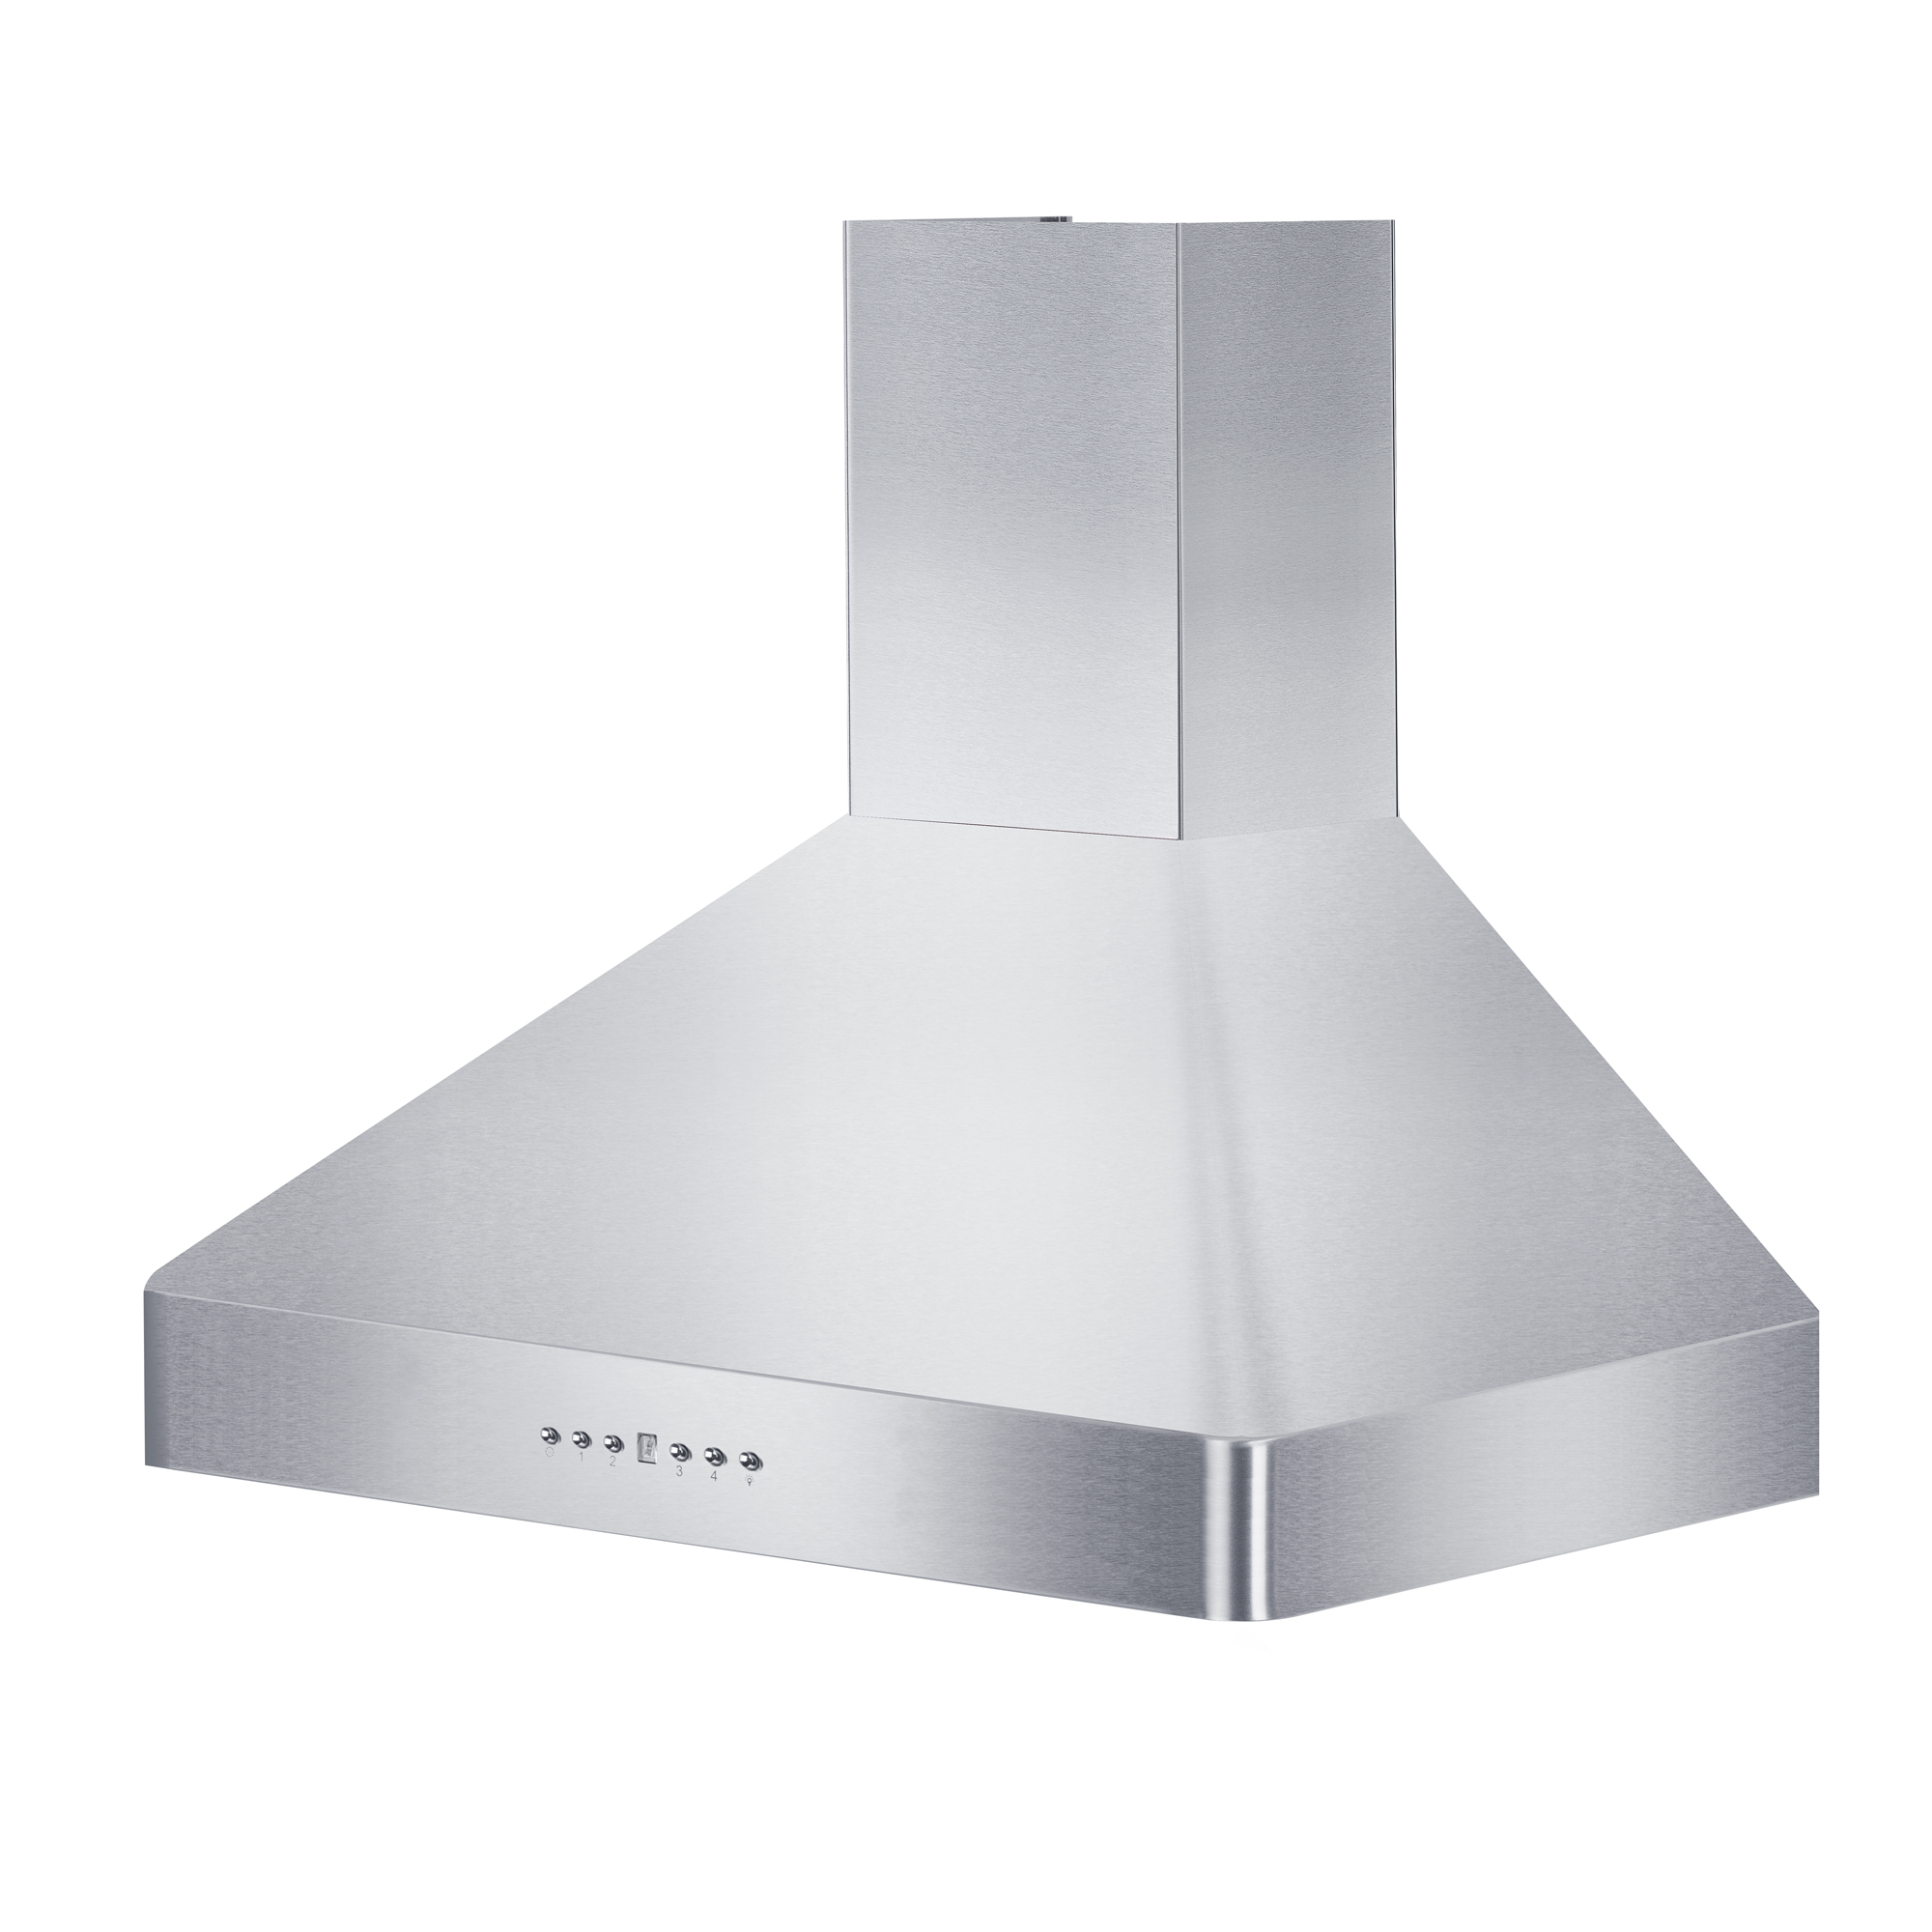 zline-stainless-steel-wall-mounted-range-hood-kf2-new-main.jpg